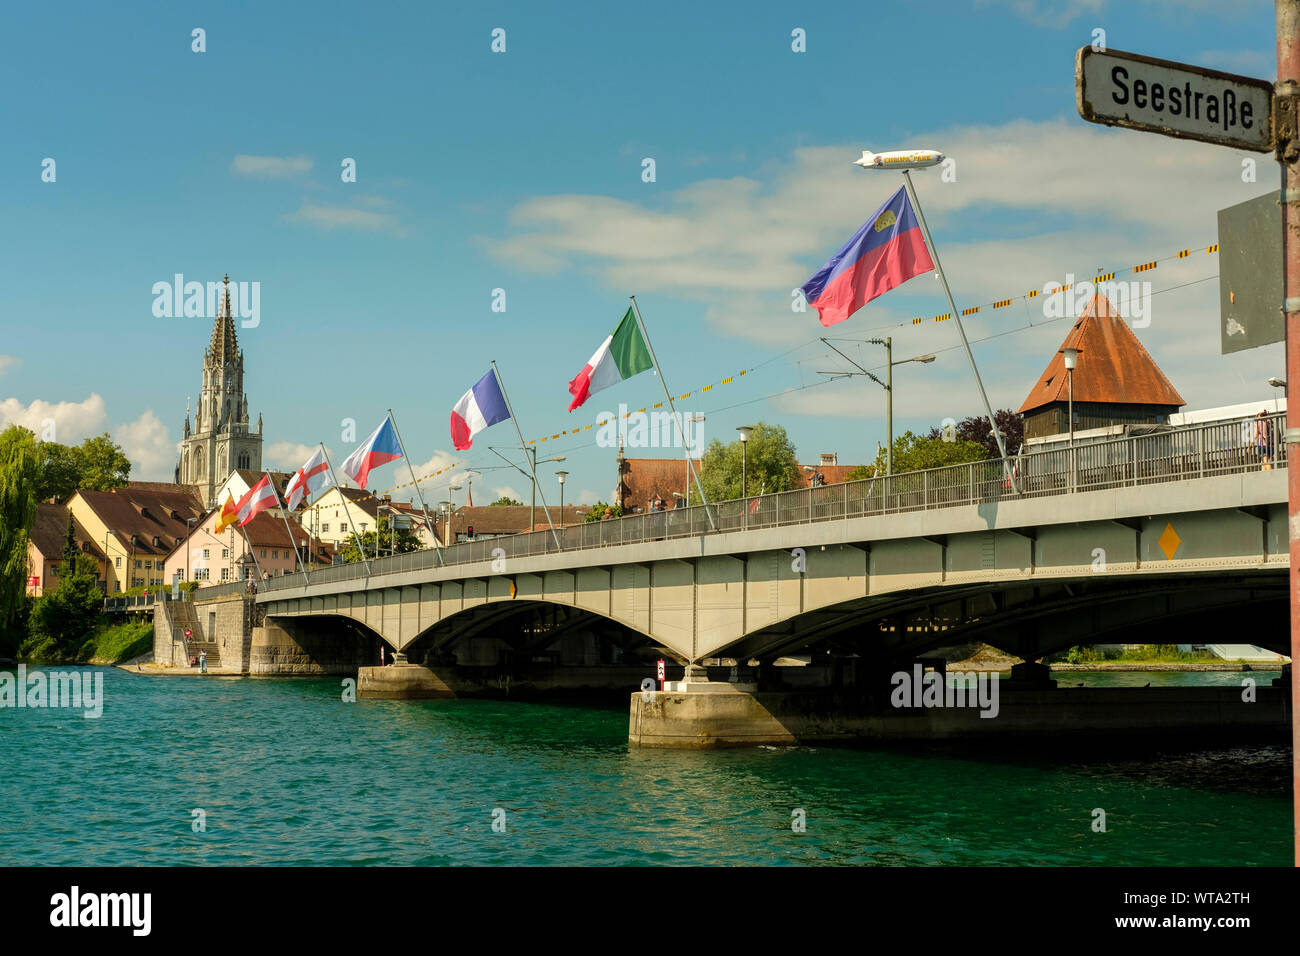 The Bridge over river Rhein, Rheinbruecke connecting the the old town and new part and Zeppelin in the sky,Konstanz, Germany Stock Photo